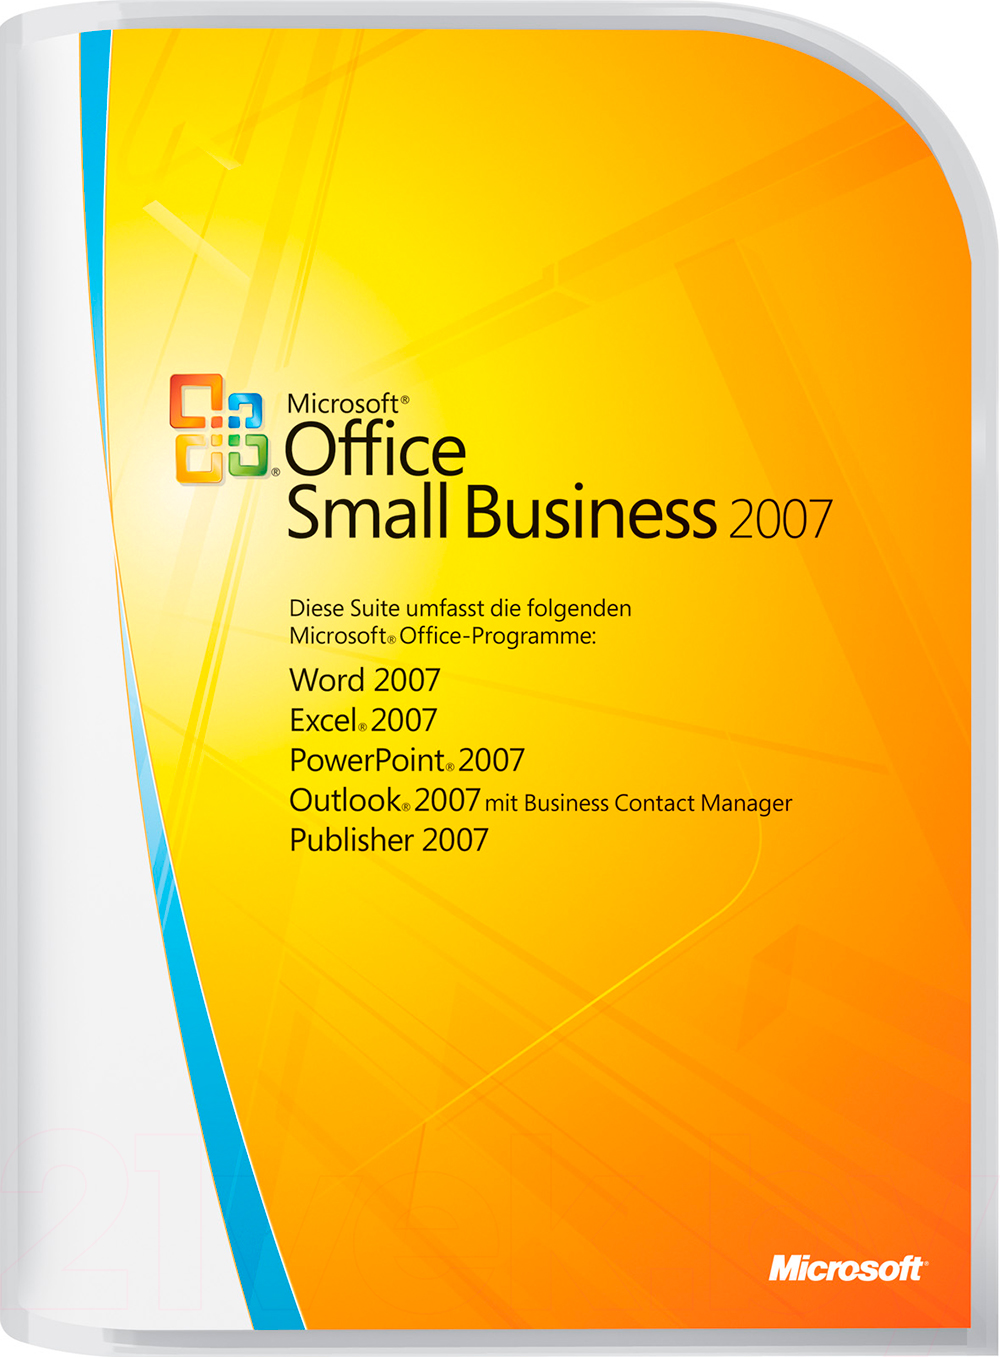 Office Small Business 2007 Win32 Ru 1pk (9QA-01535) 21vek.by 1691000.000